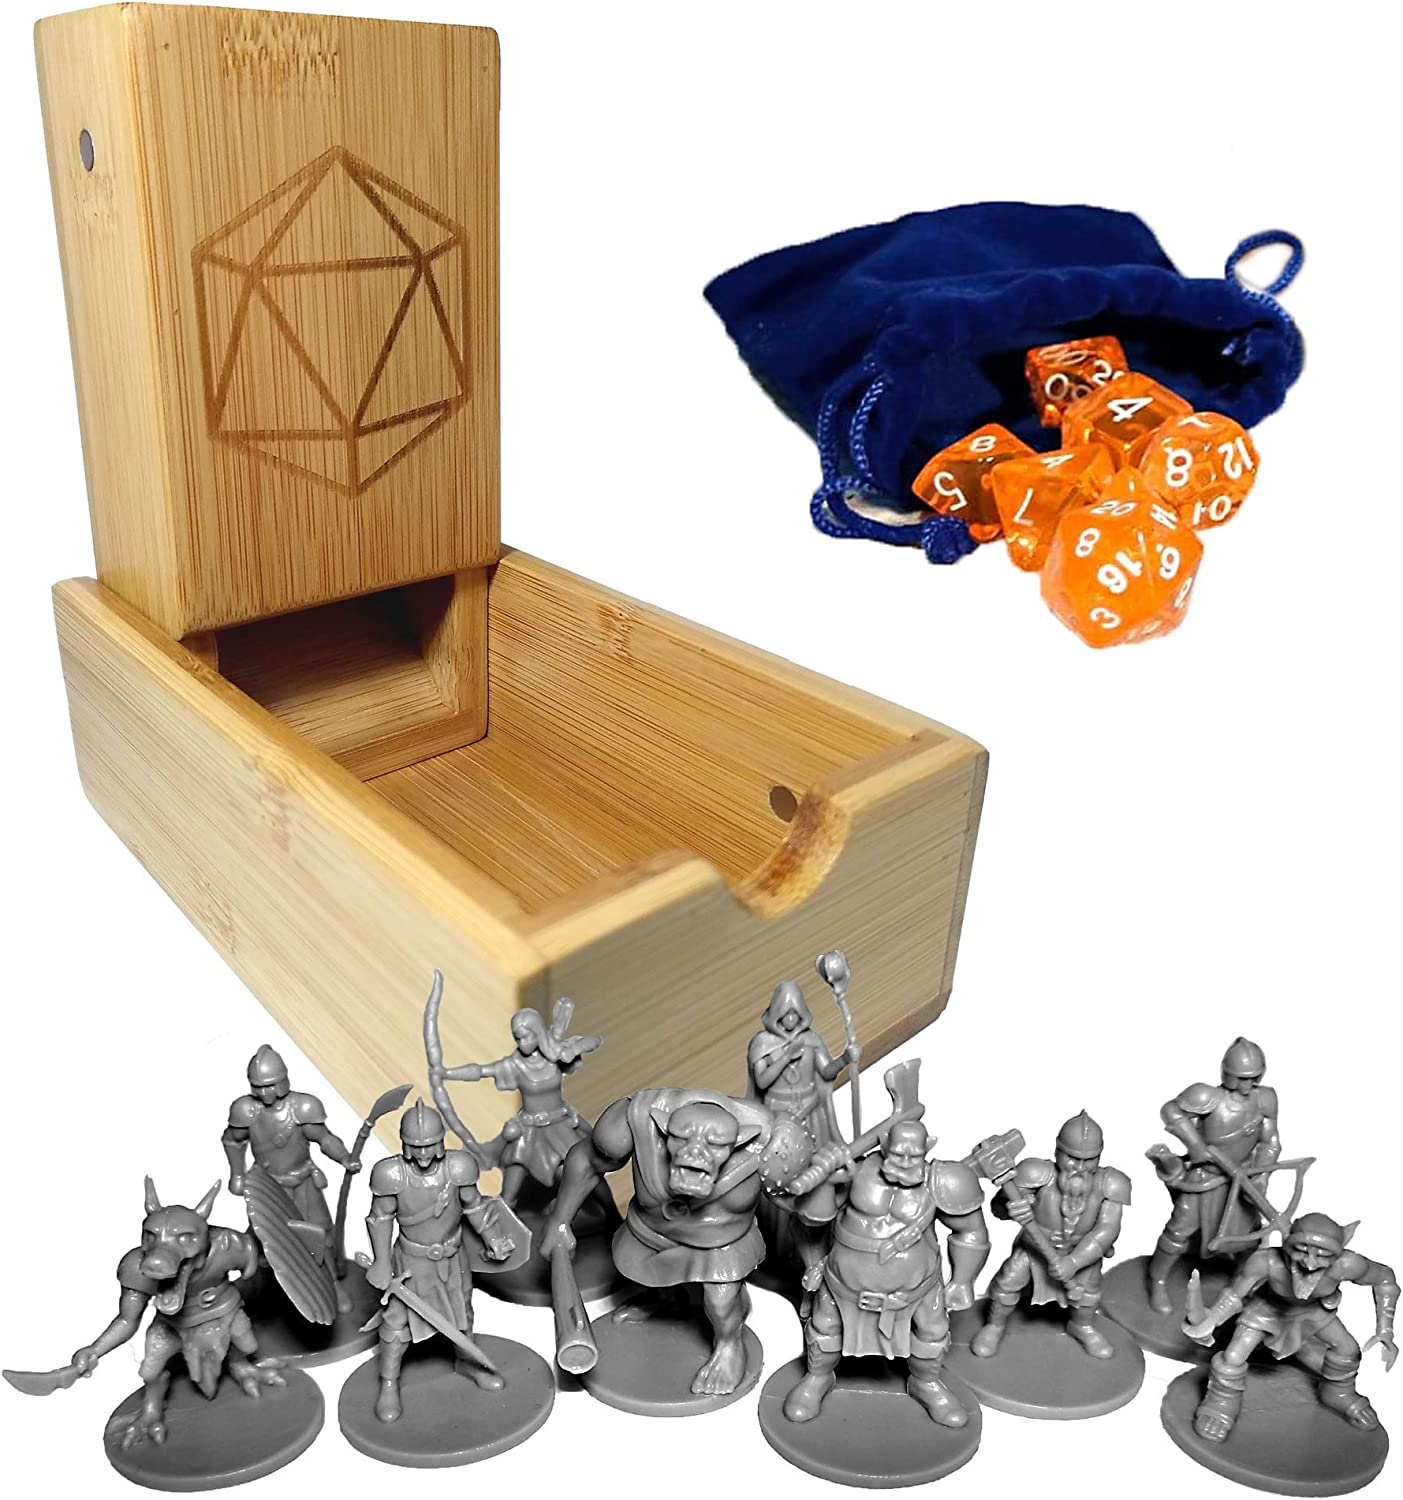 Dice Set with Velvet Bag and Other Tabletop Games Compatible with Dungeons and Dragons Pathfinder 10 Tabletop Minis Bamboo Dice Tower DND Gift Set